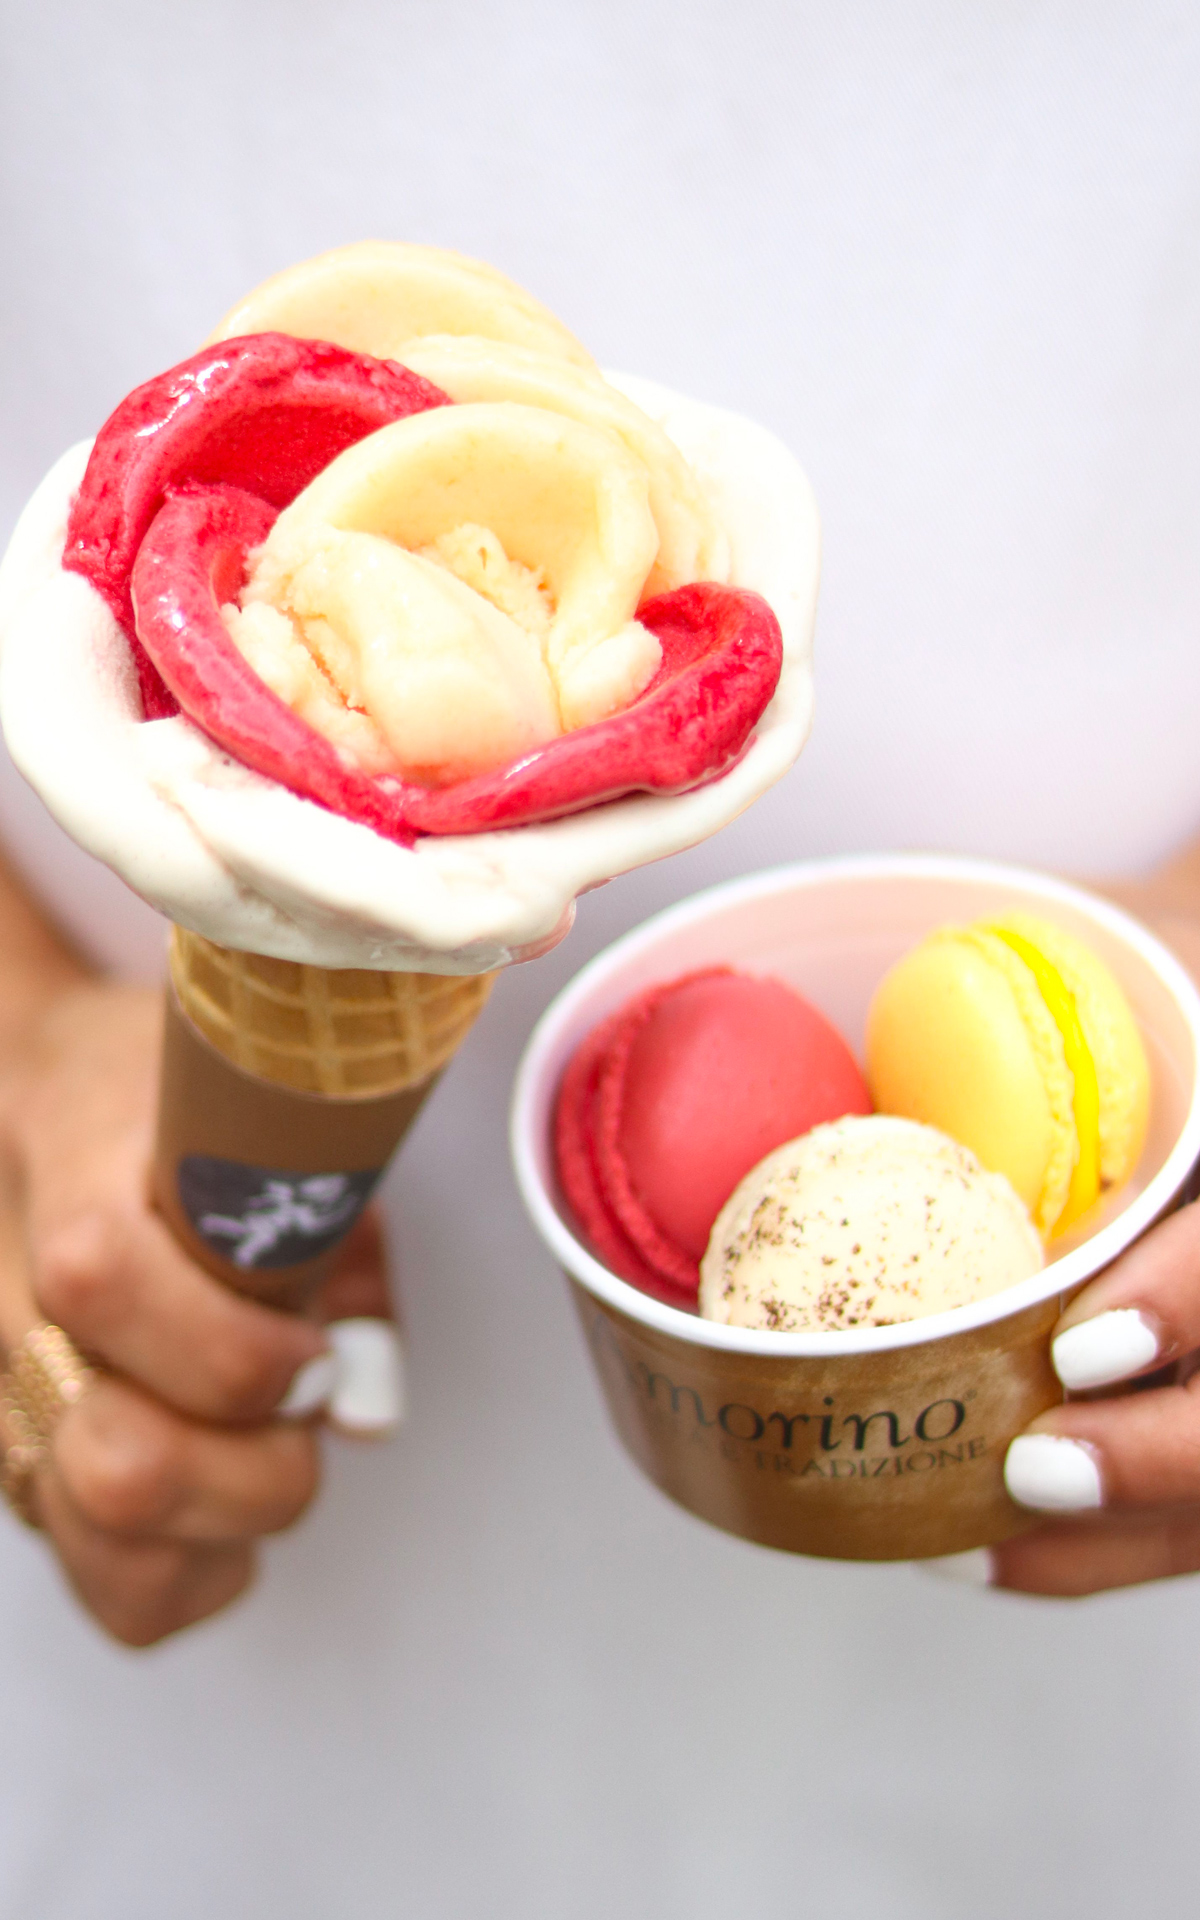 Amorino ice cream Las Rozas Village